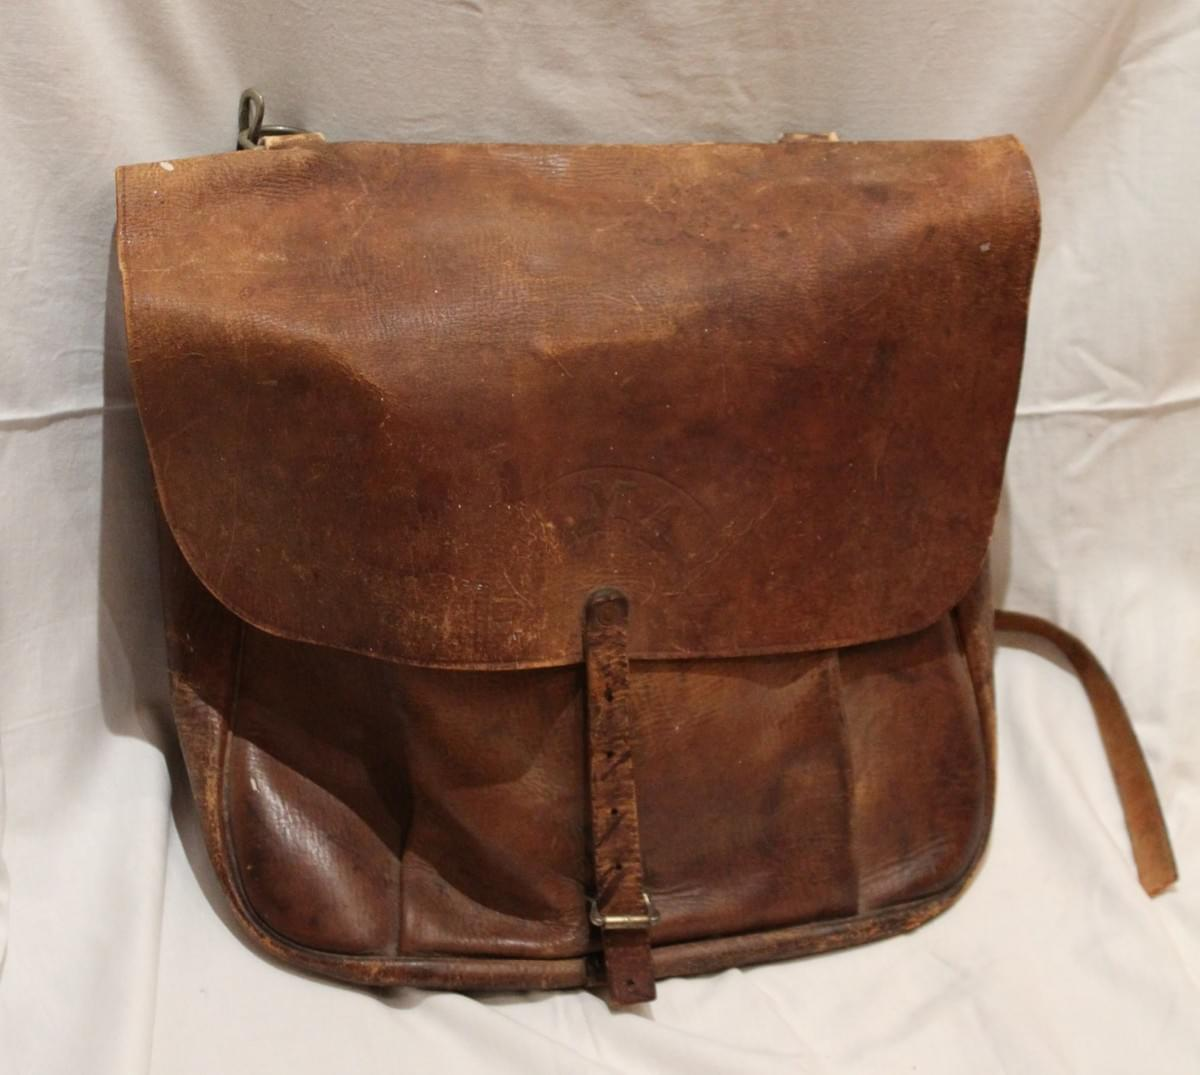 Early Tacoma U.S. Mail Bag - Job Carr Cabin Museum